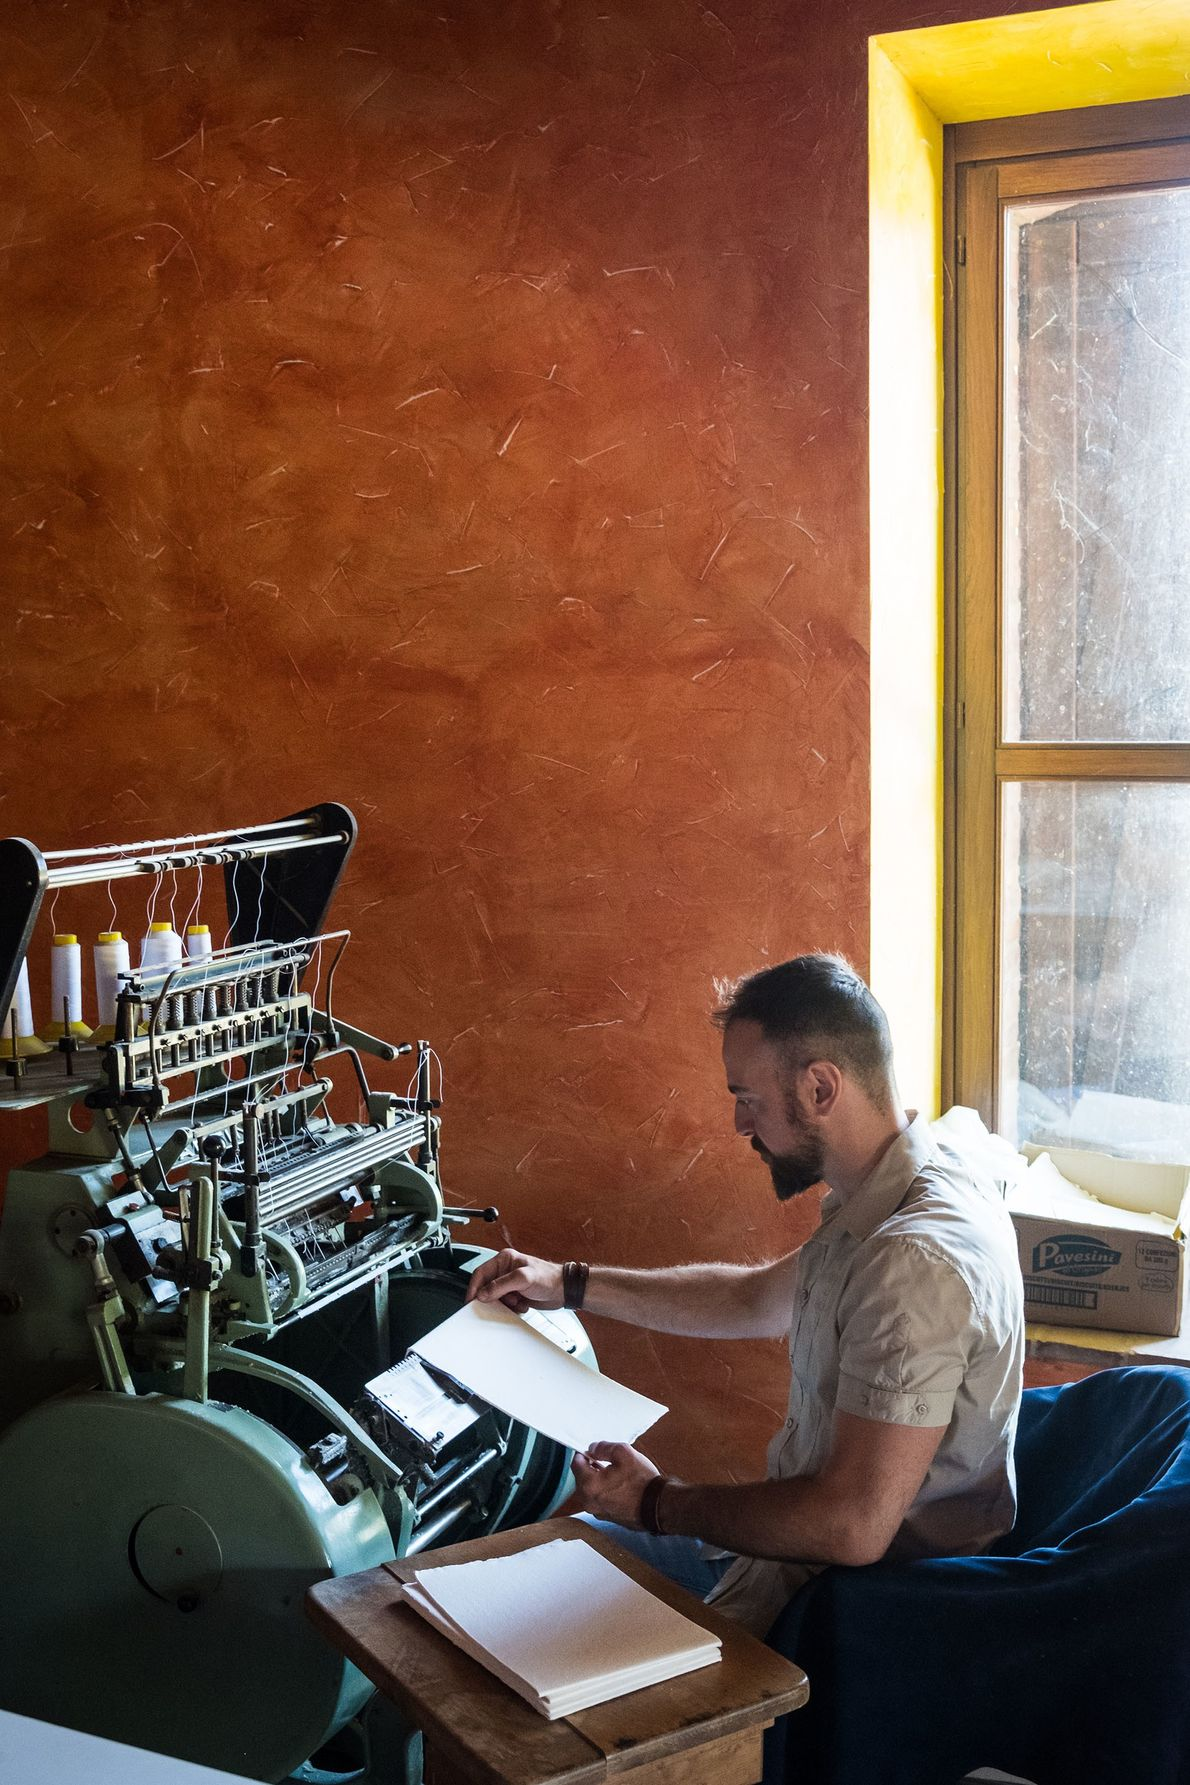 Craftsman Emiliano Scattolini at work binding books by hand in the workshop he shares with Luigi ...